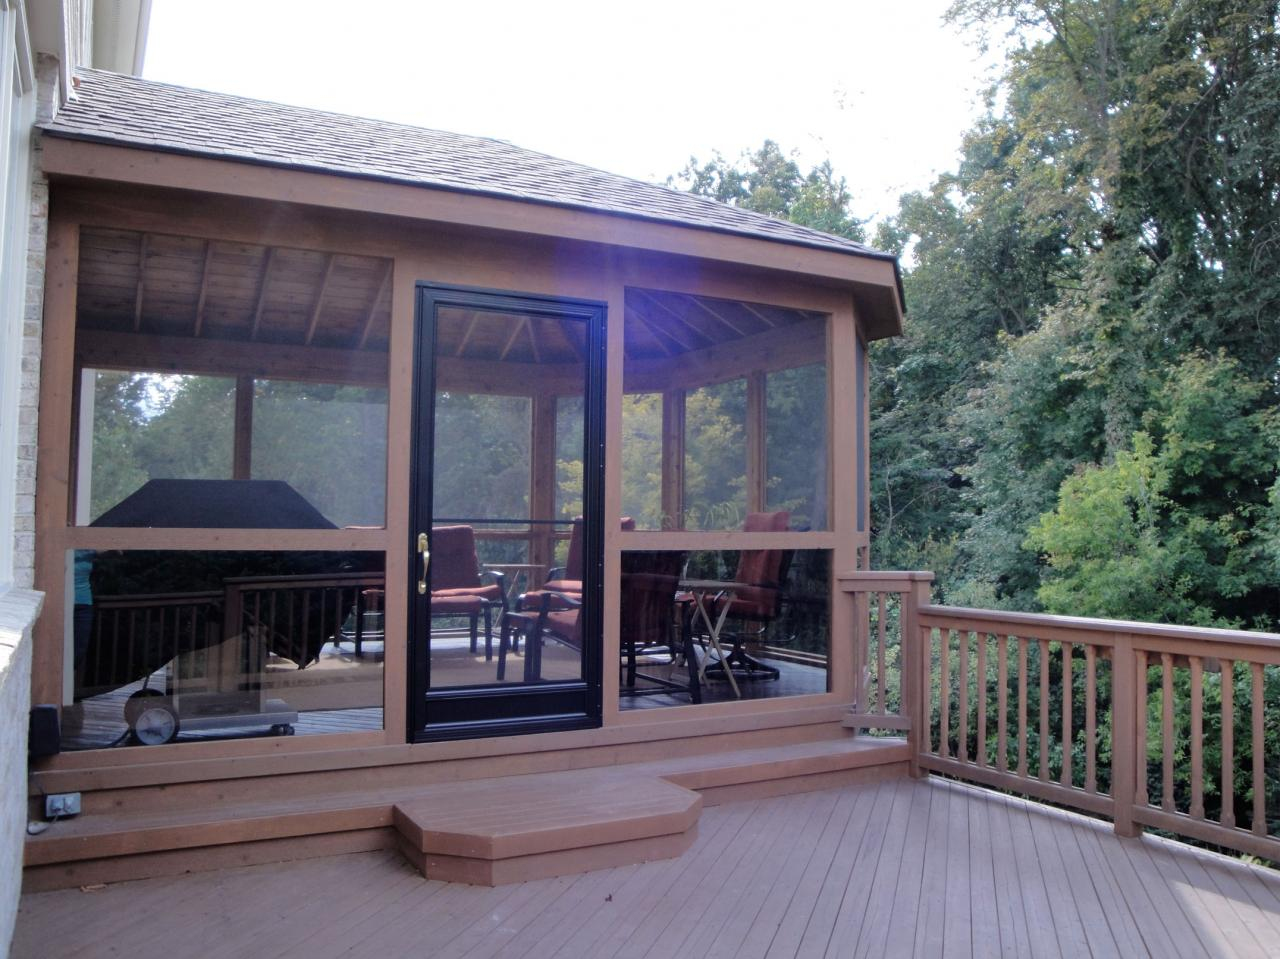 R t construction inc screened porch gallery for Gallery porch